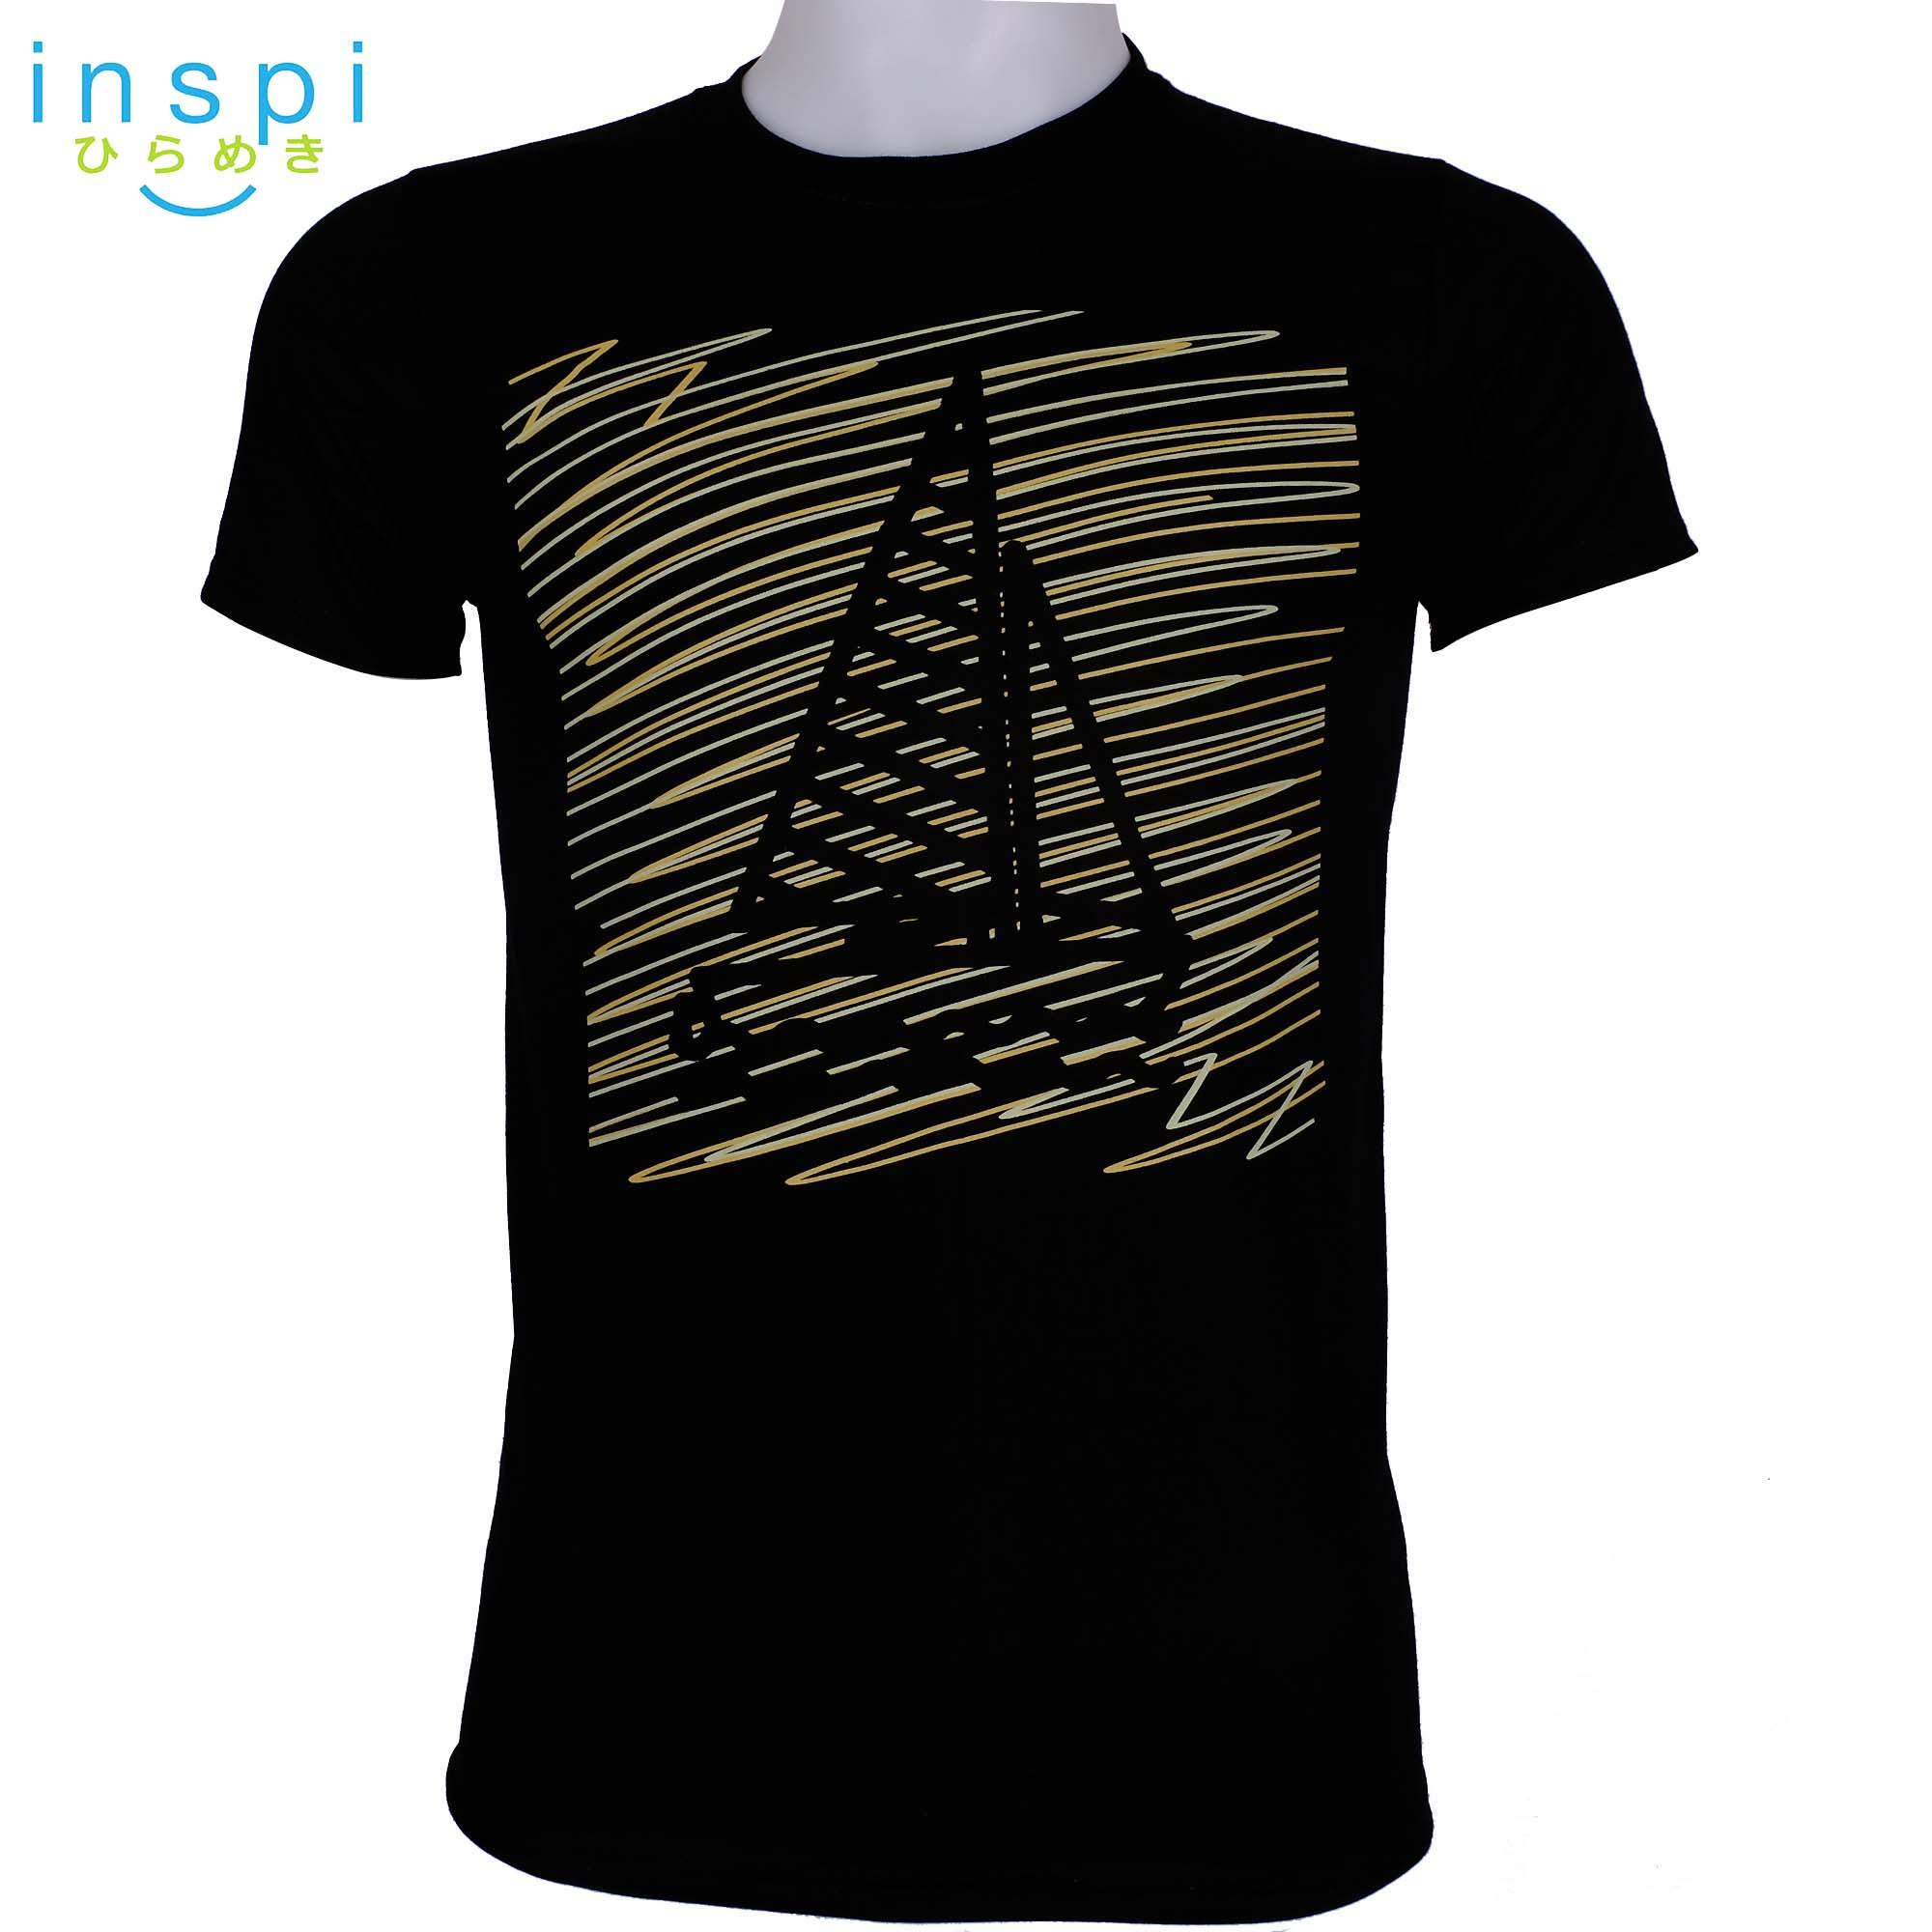 77b111722985 INSPI Tees Doodle Boat (Black) tshirt printed graphic tee Mens t shirt  shirts for